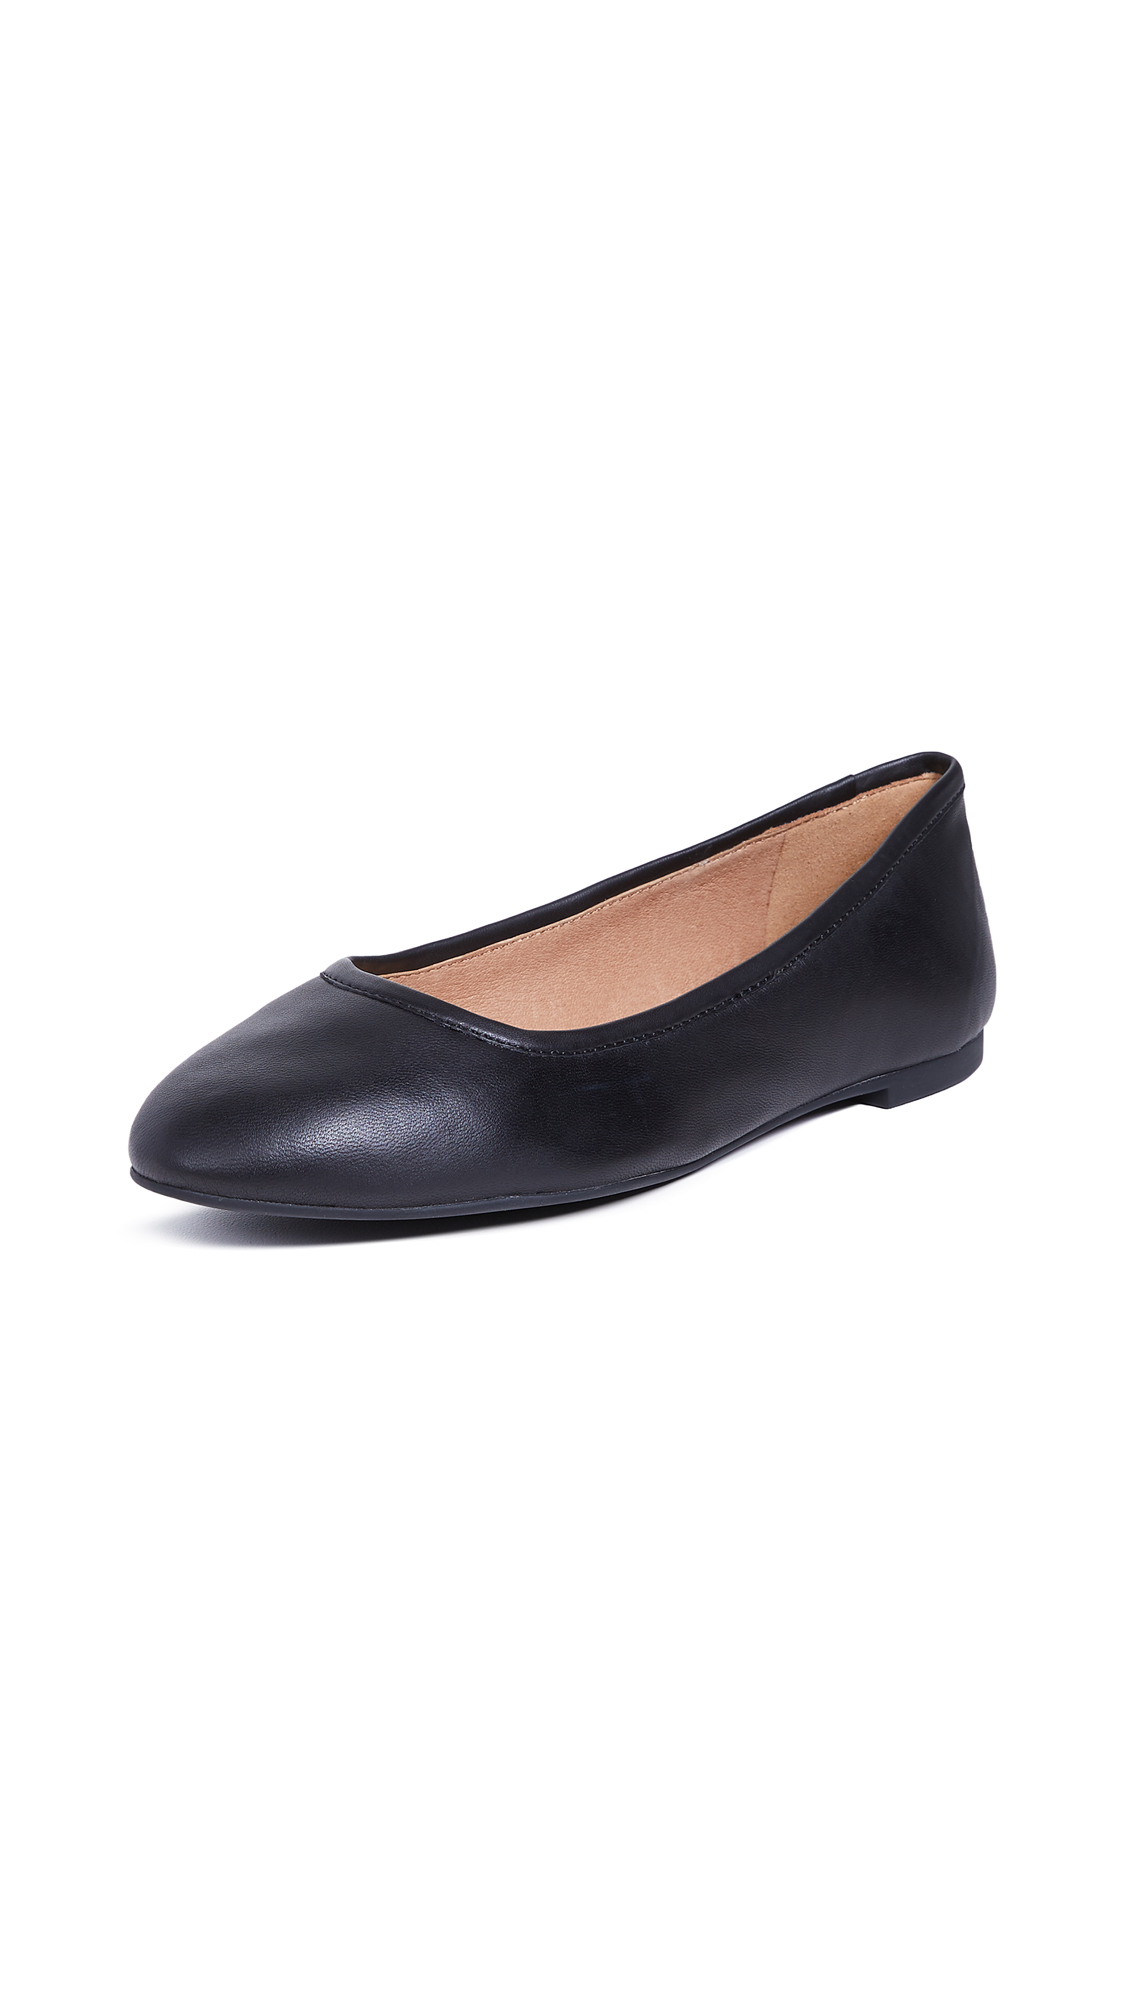 Madewell The Reid Ballet Flats - True Black